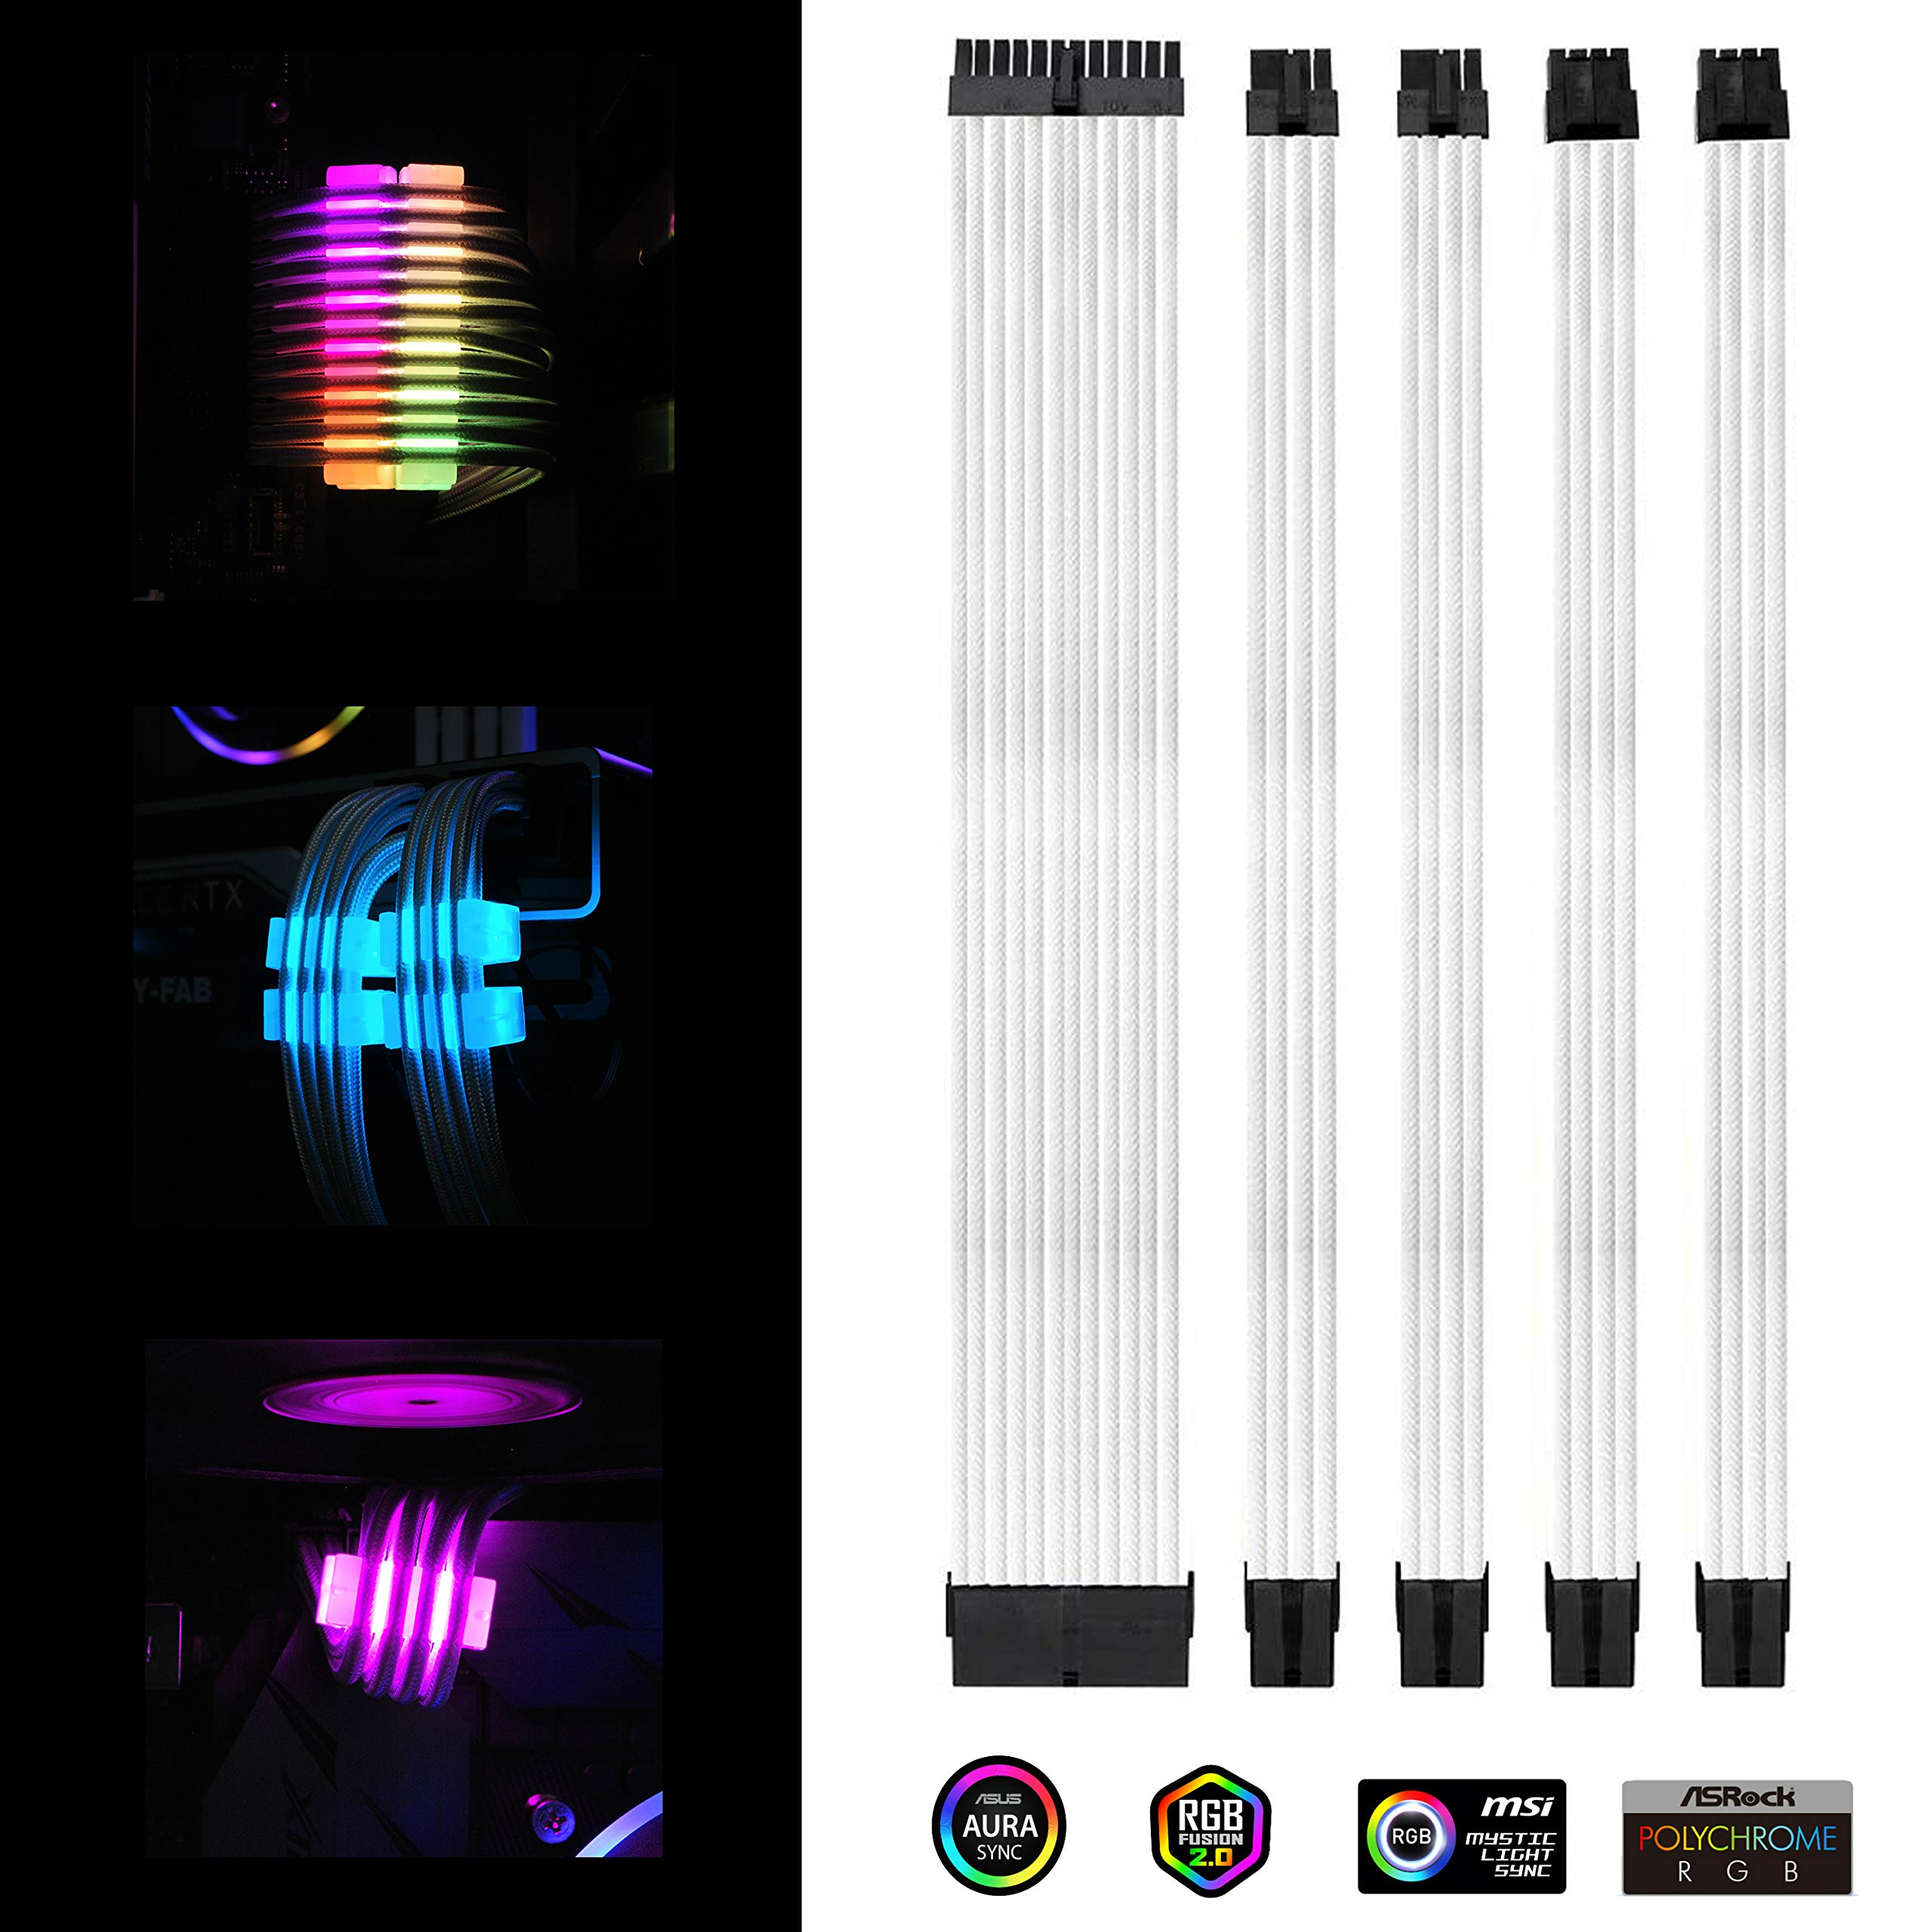 EZDIY-FAB White PSU Extension Kit 300mm with RGB Cable Combs - 24-PIN 6+2-PIN 4+4-PIN with RGB Combs for Cable Management with RF Control by EZDIY-FAB